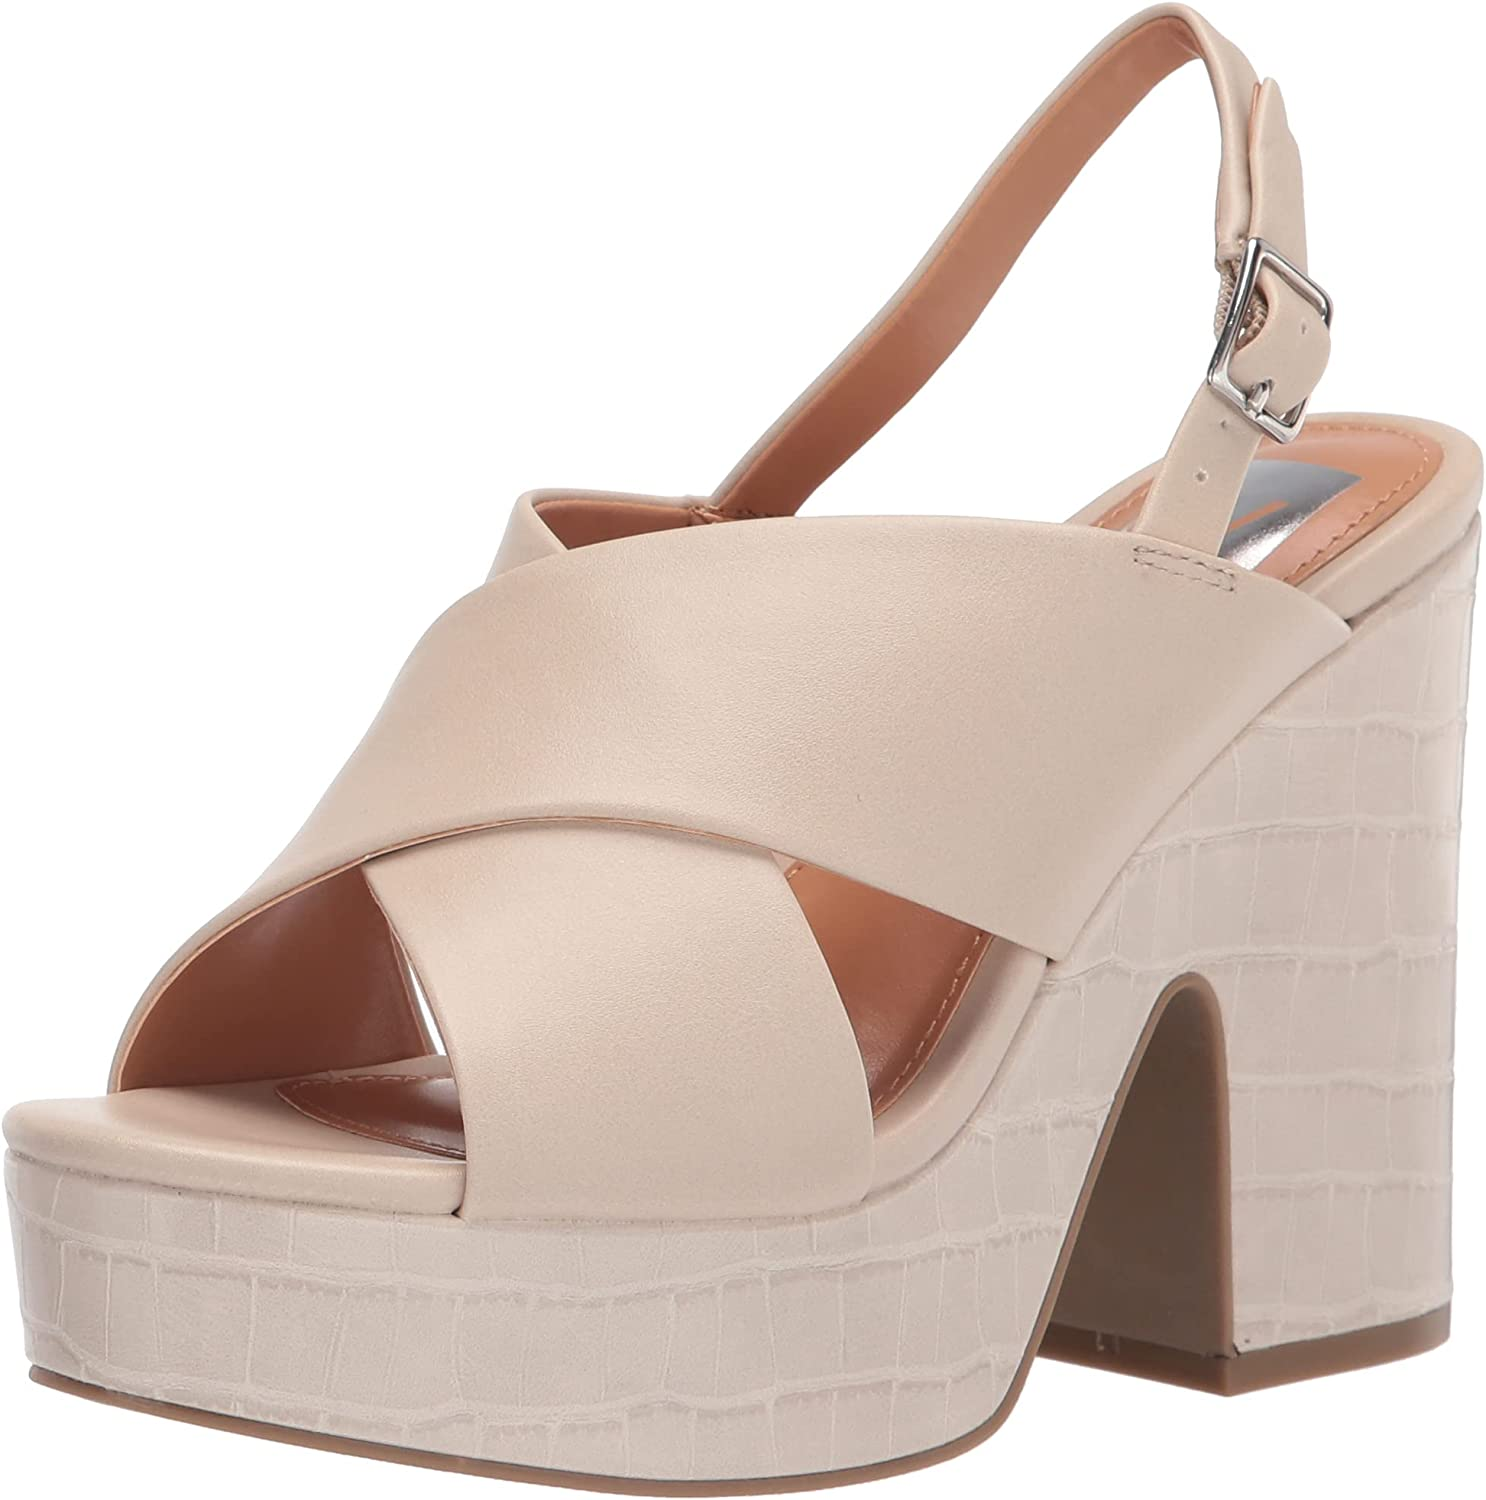 DV Dolce Vita Women's Heeled Sandal discount Cypress Shipping included